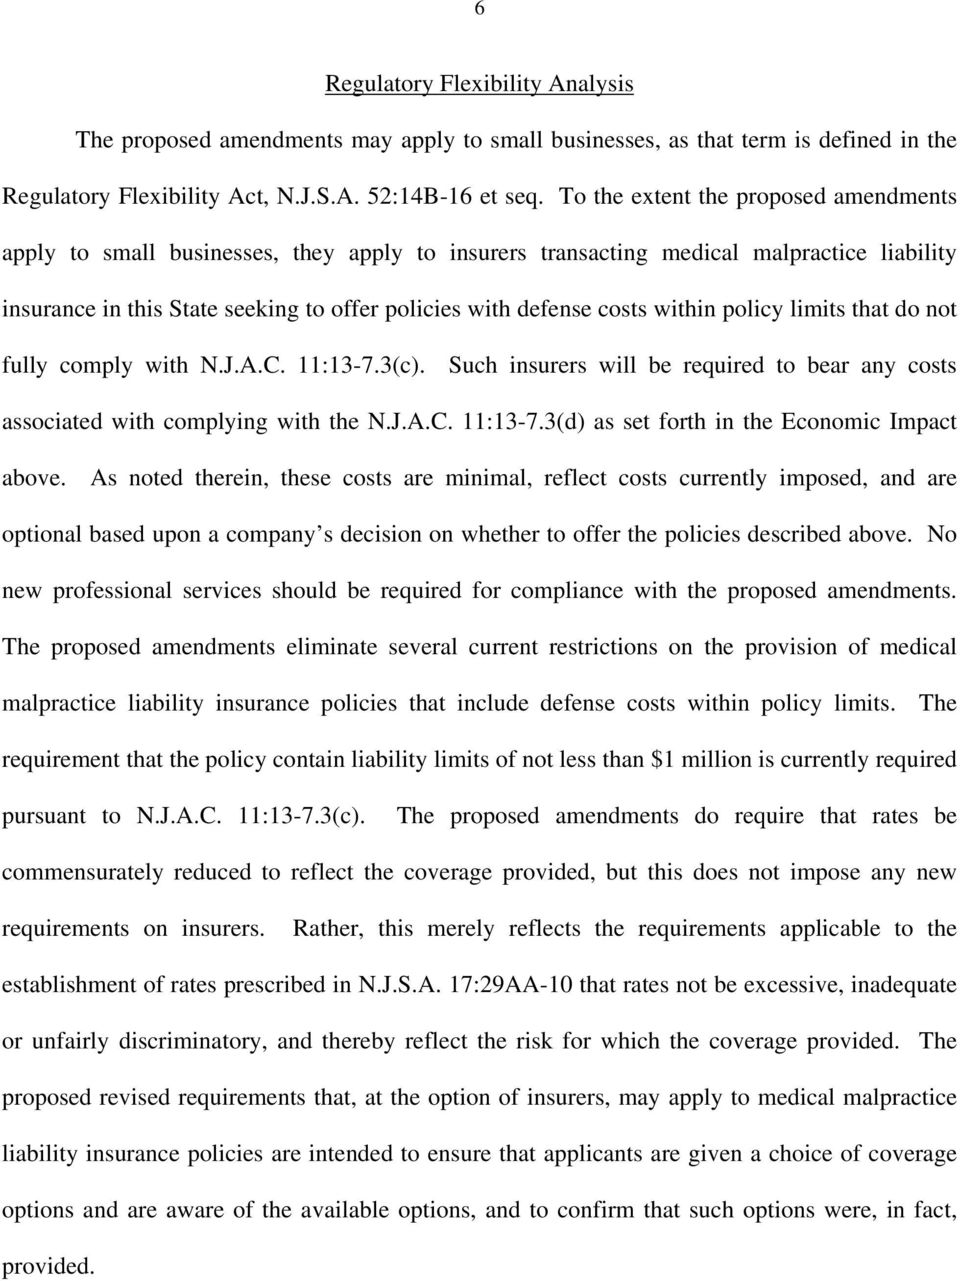 within policy limits that do not fully comply with N.J.A.C. 11:13-7.3(c). Such insurers will be required to bear any costs associated with complying with the N.J.A.C. 11:13-7.3(d) as set forth in the Economic Impact above.